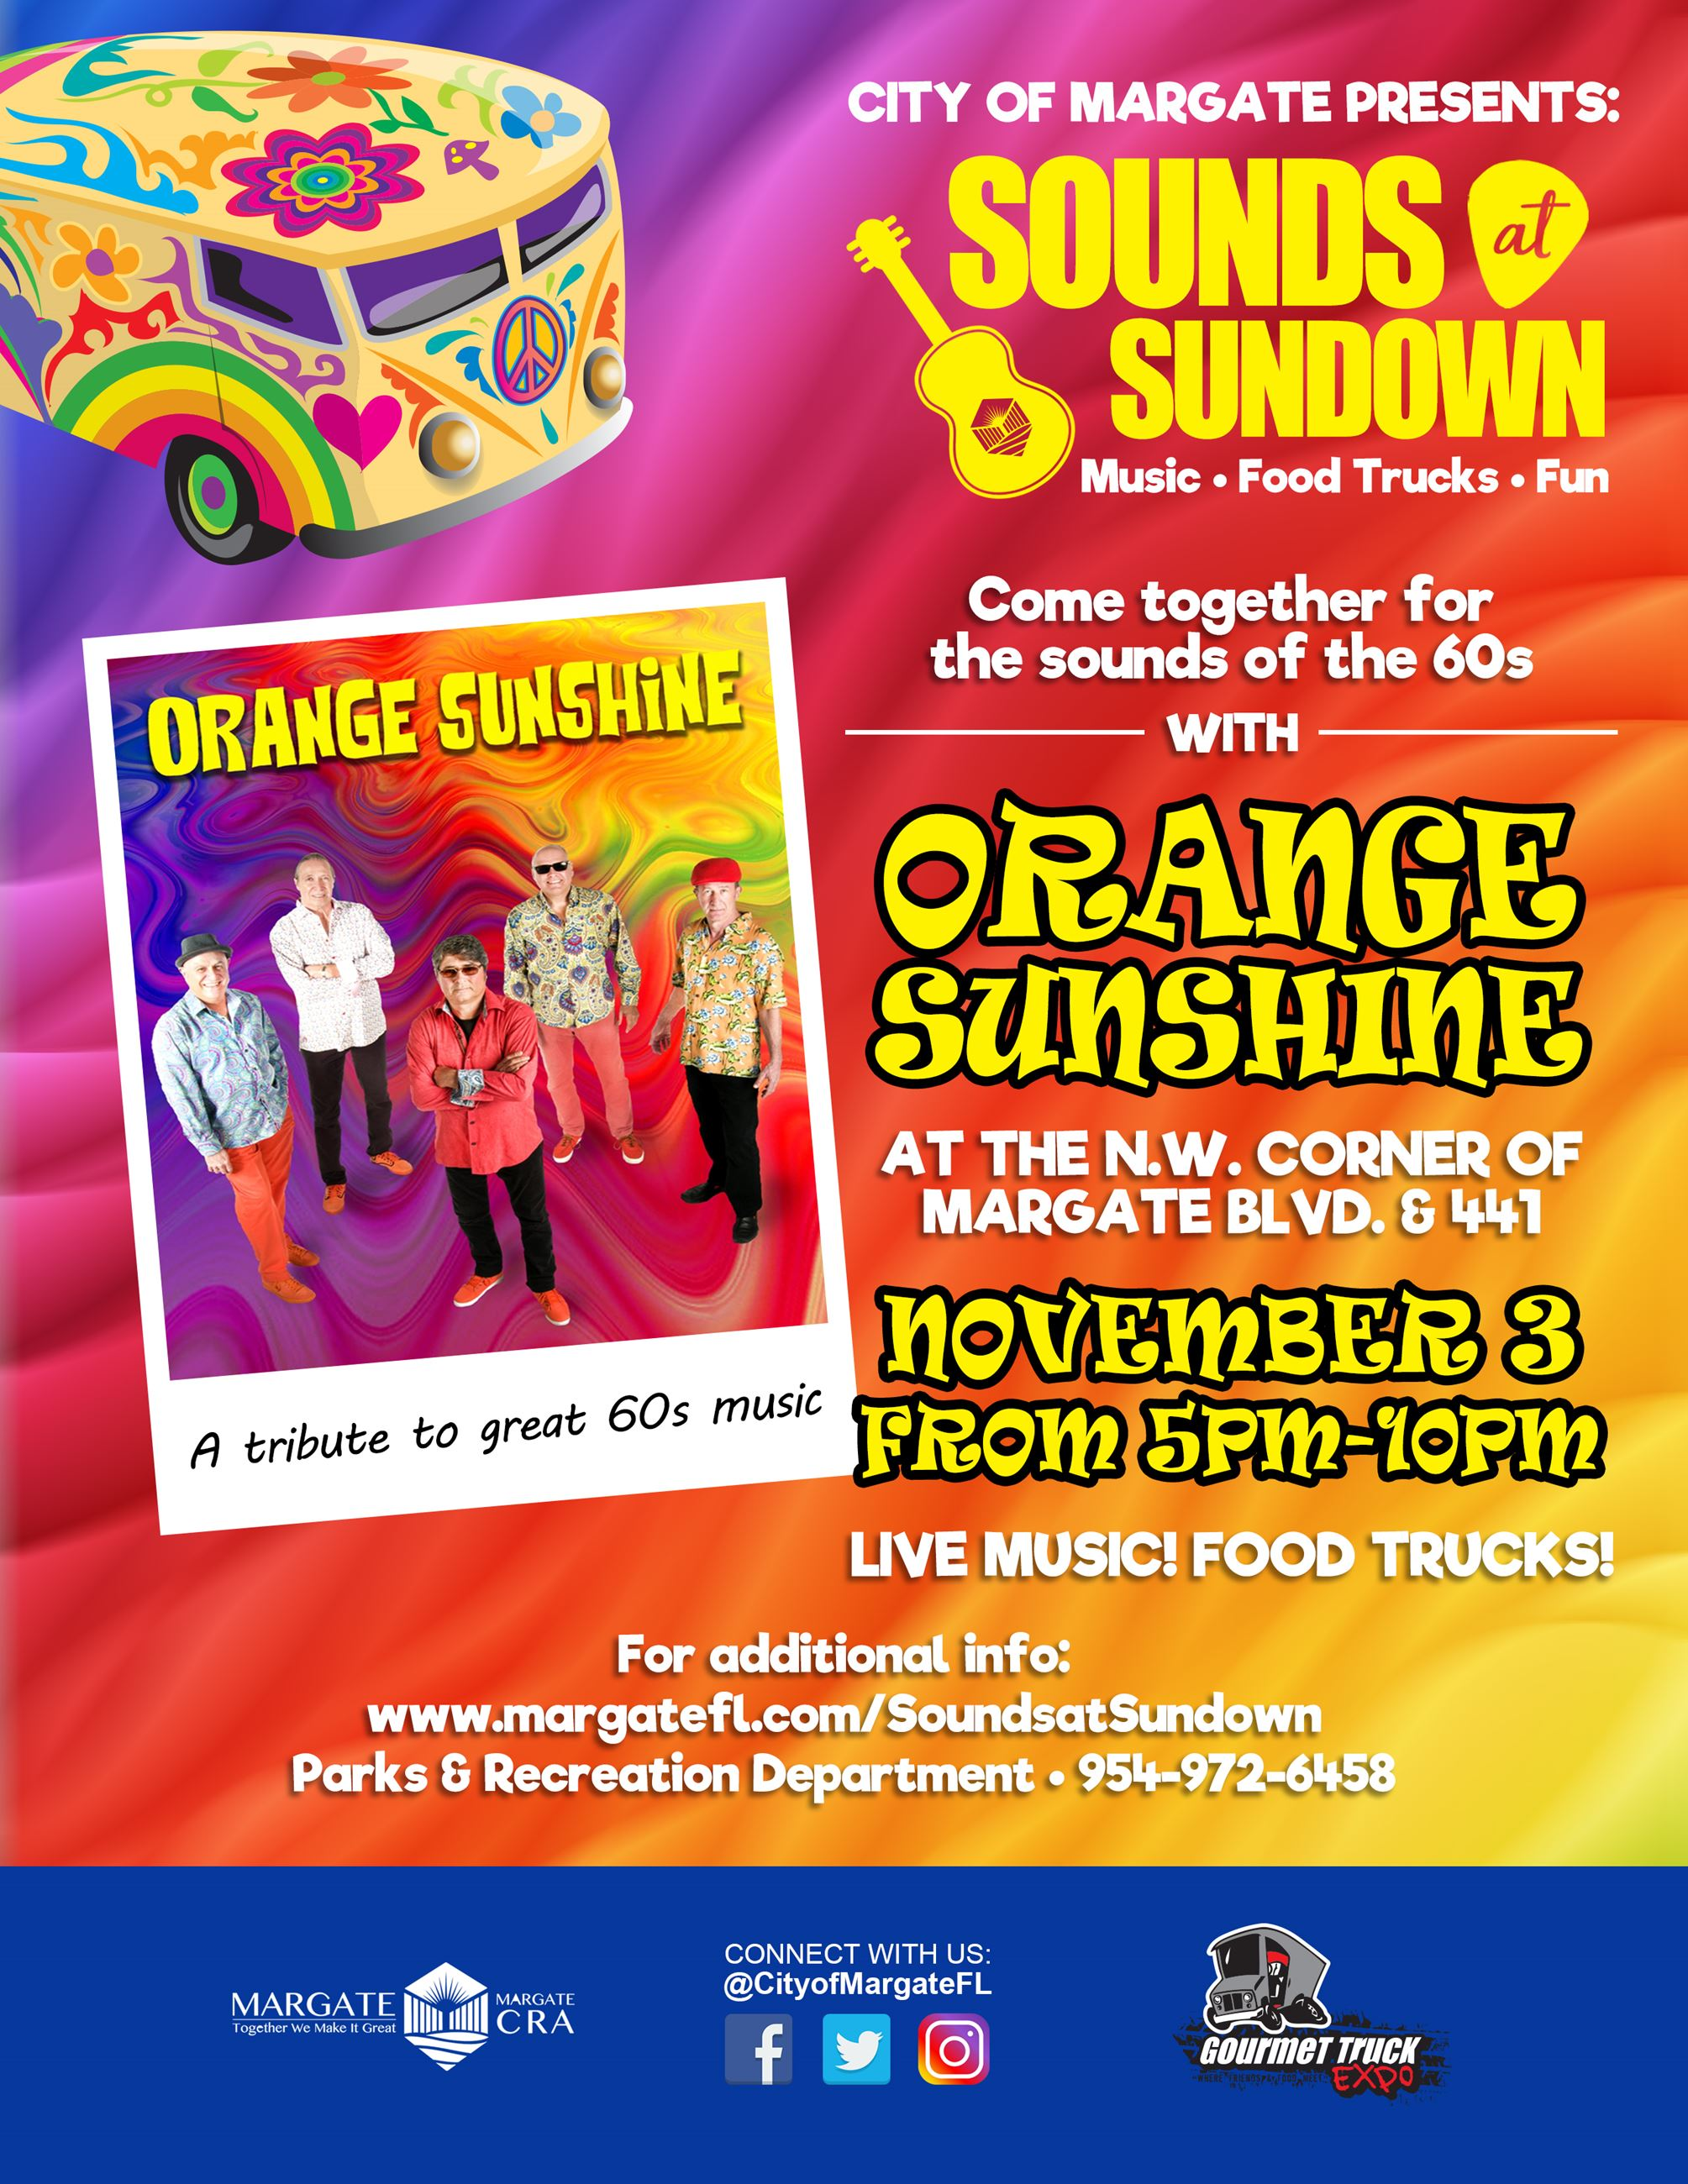 Sounds at Sundown 2018 - Orange Sunshine Band